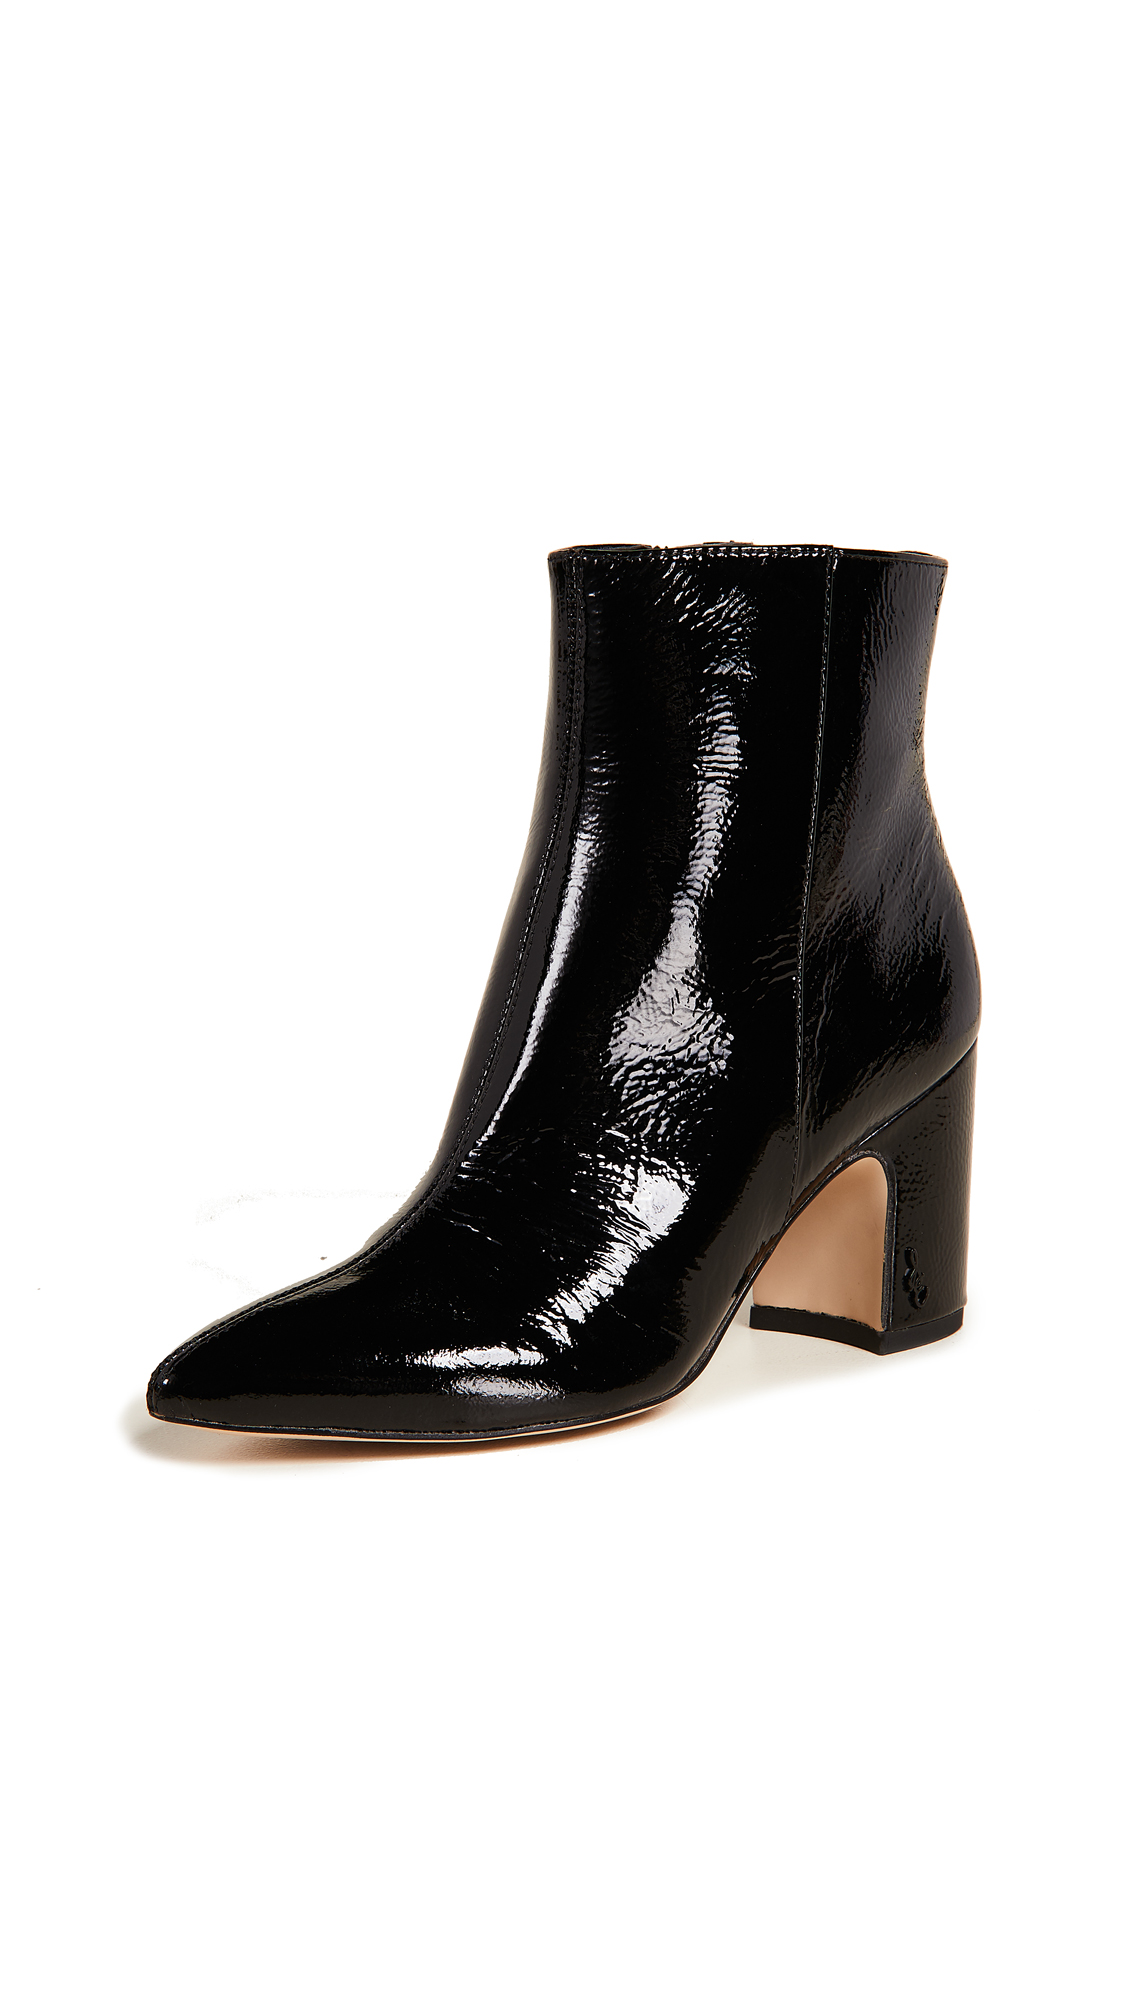 Sam Edelman Hilty Booties - Black